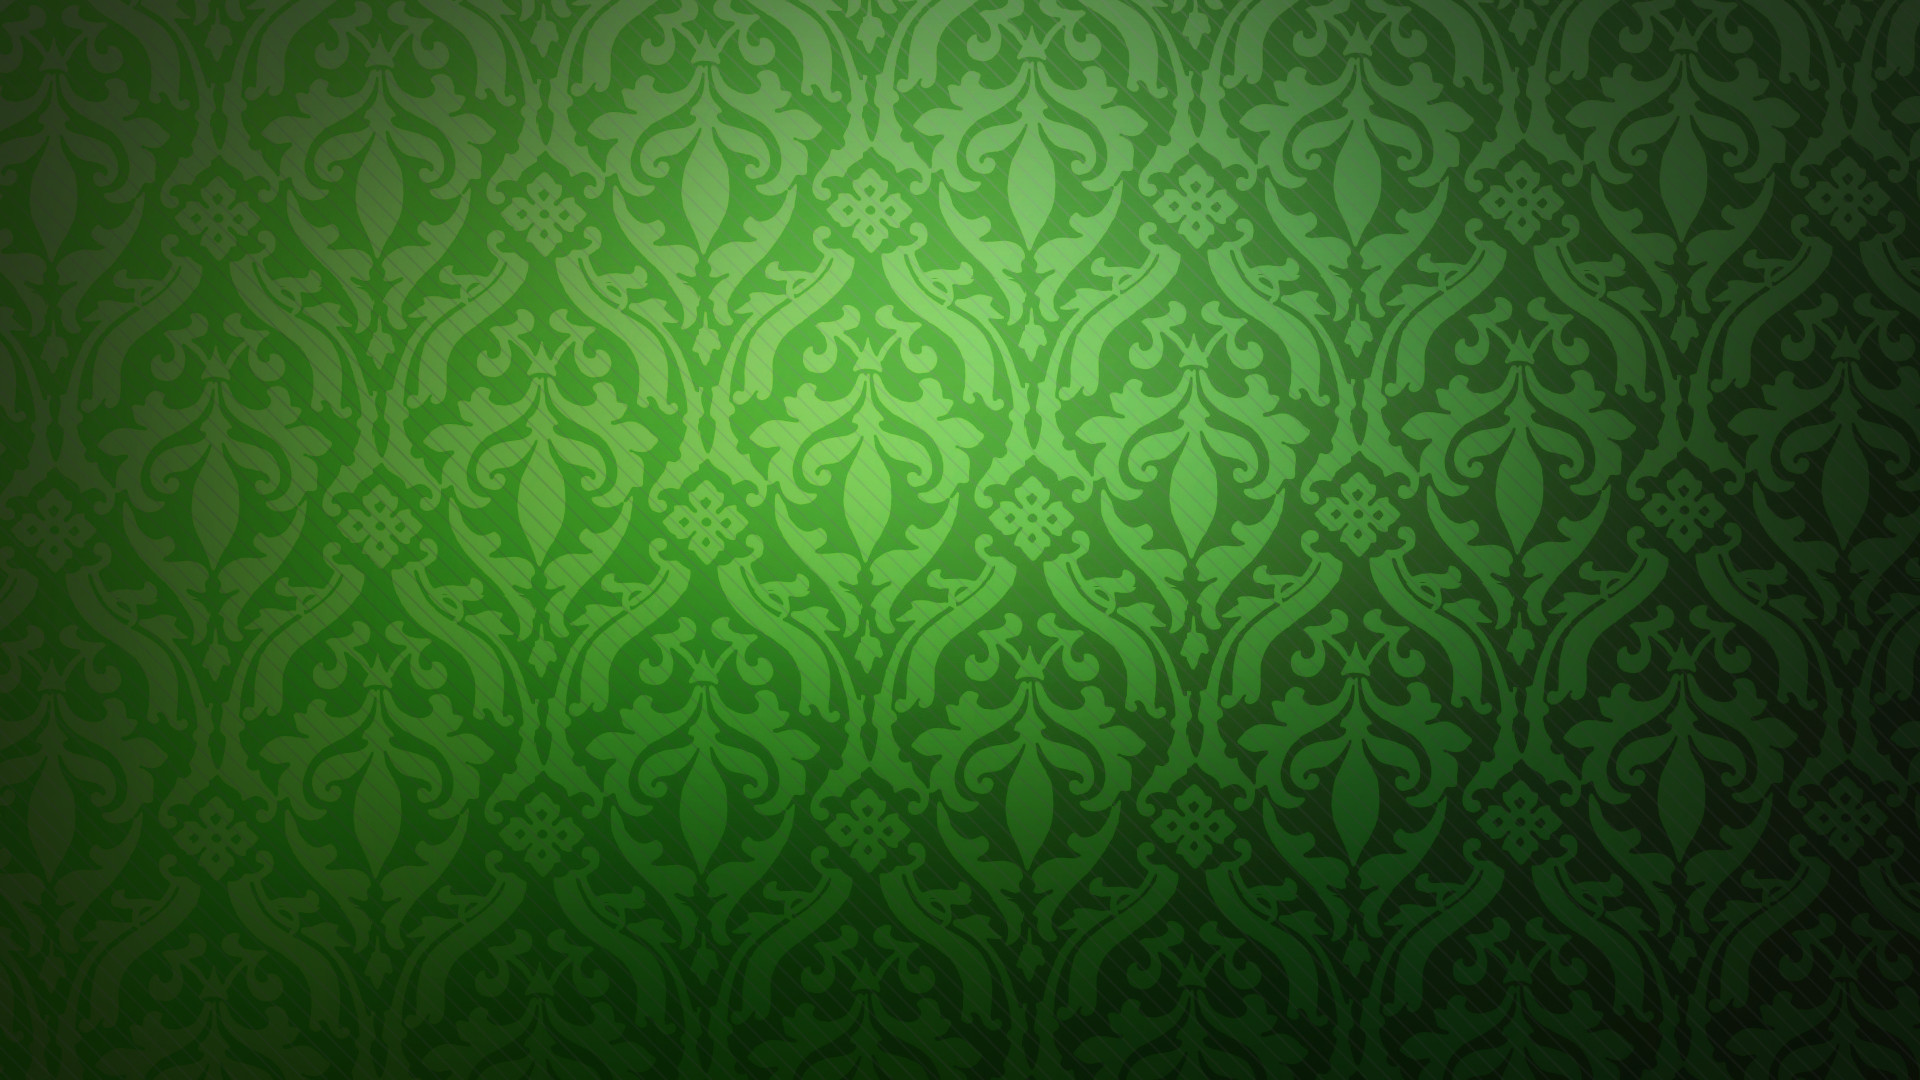 1920x1080 green-background-for-website-and-photoshop – Isthmus Montessori Academy